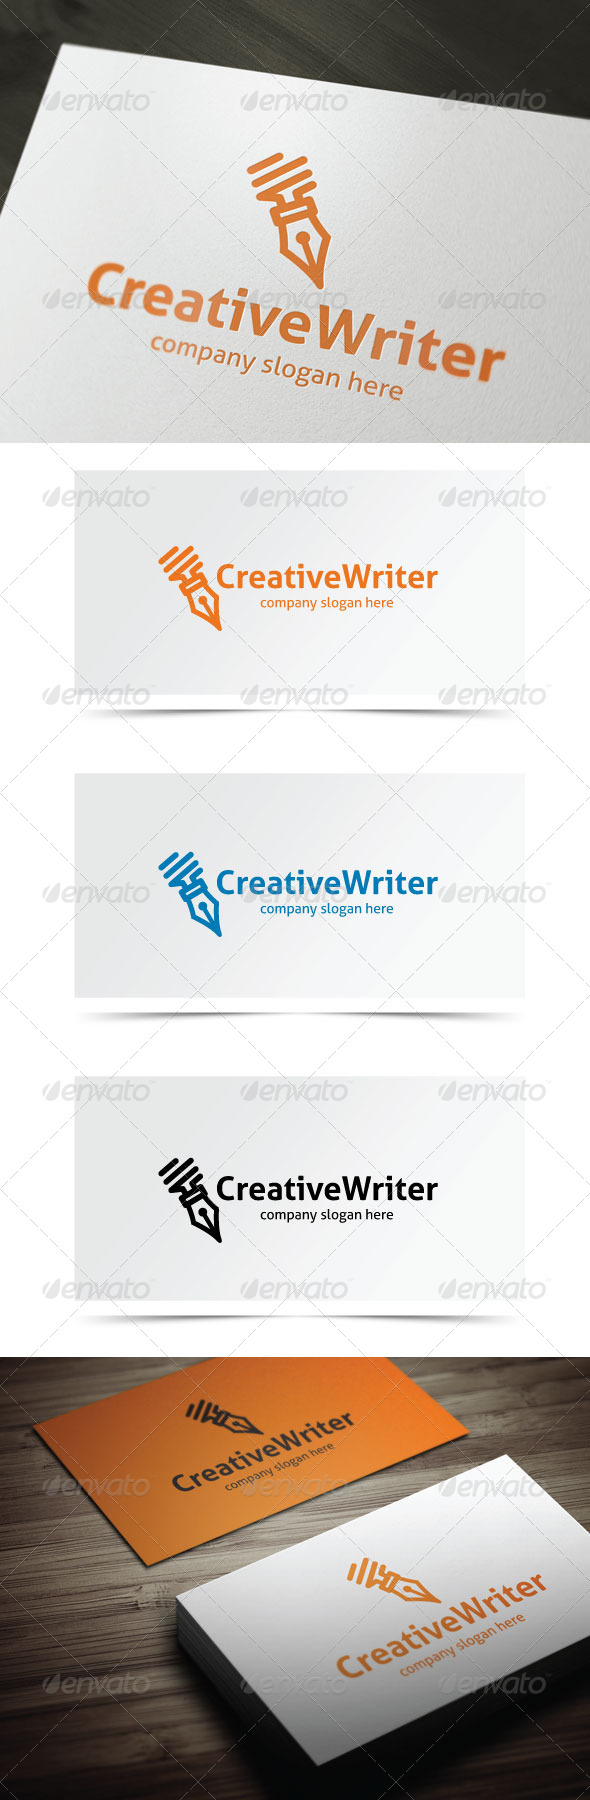 GraphicRiver Creative Writer 6539189